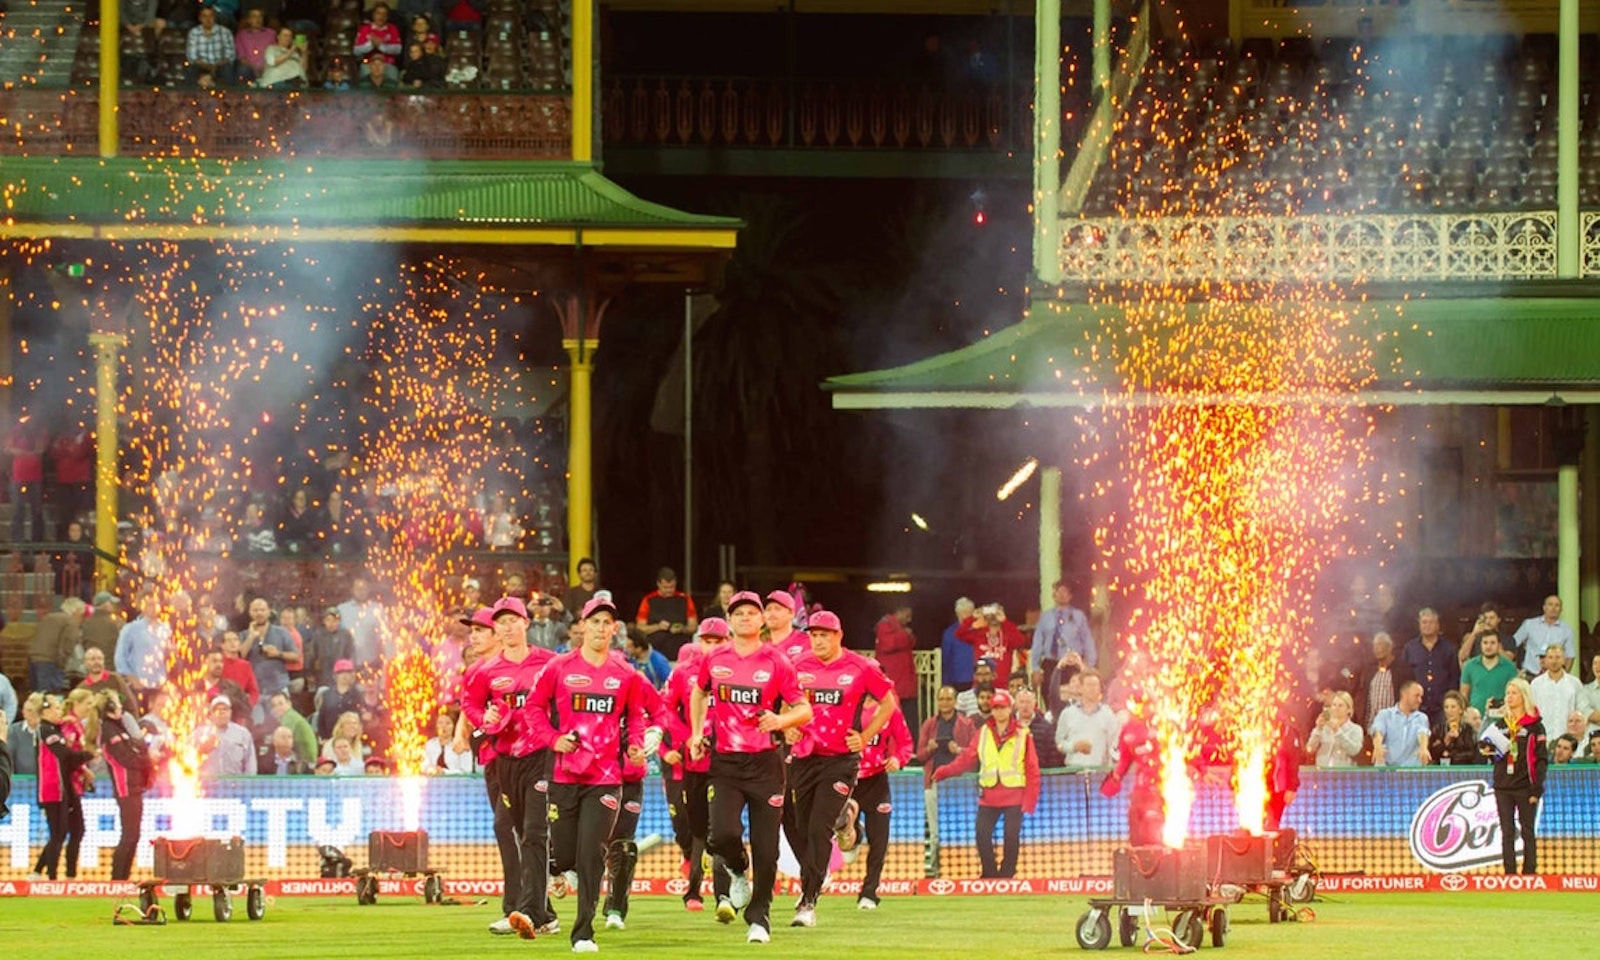 Experience The Big Bash With The Sydney Sixers in 2018/19